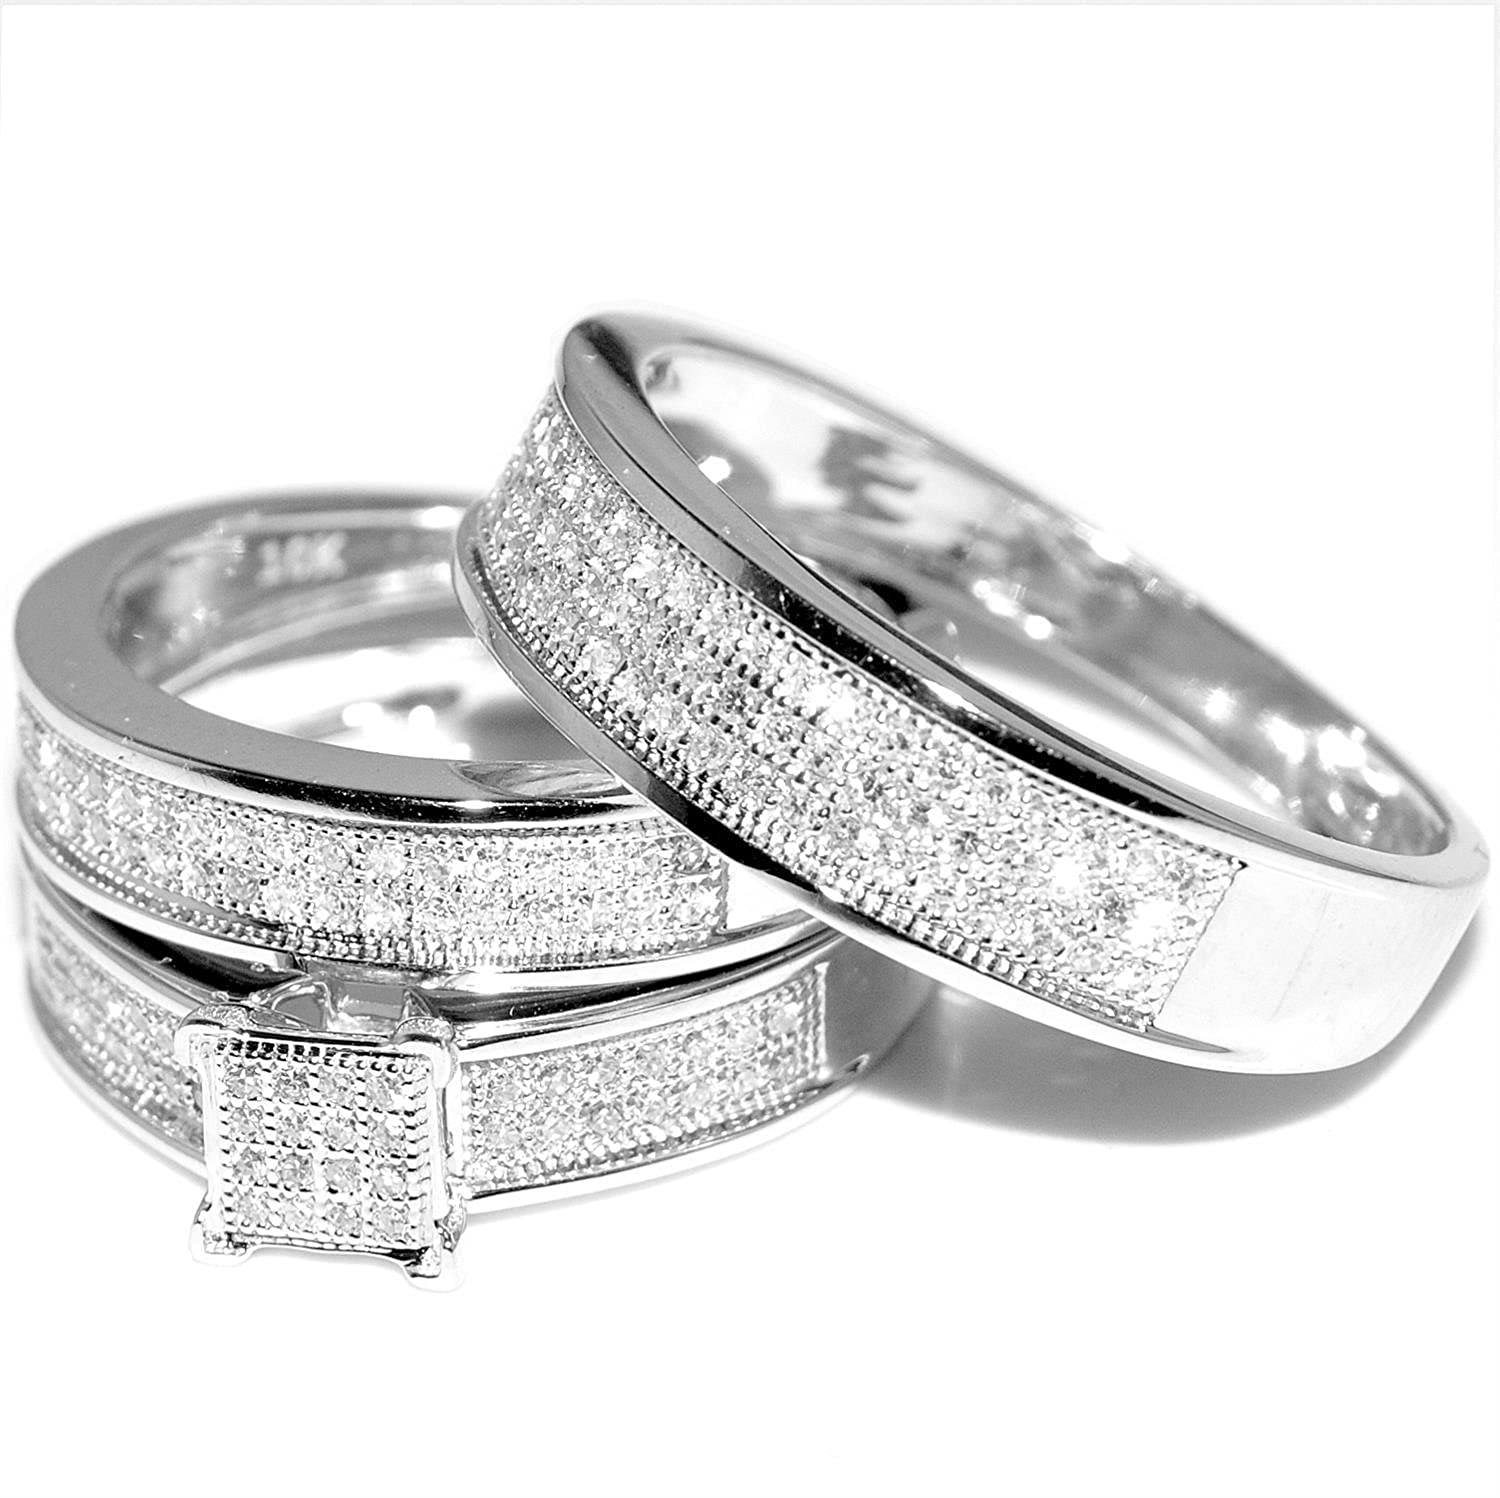 source wedding and ingle how gold london ethical rhode fairtrade engagement buy shopping rings jewellery to